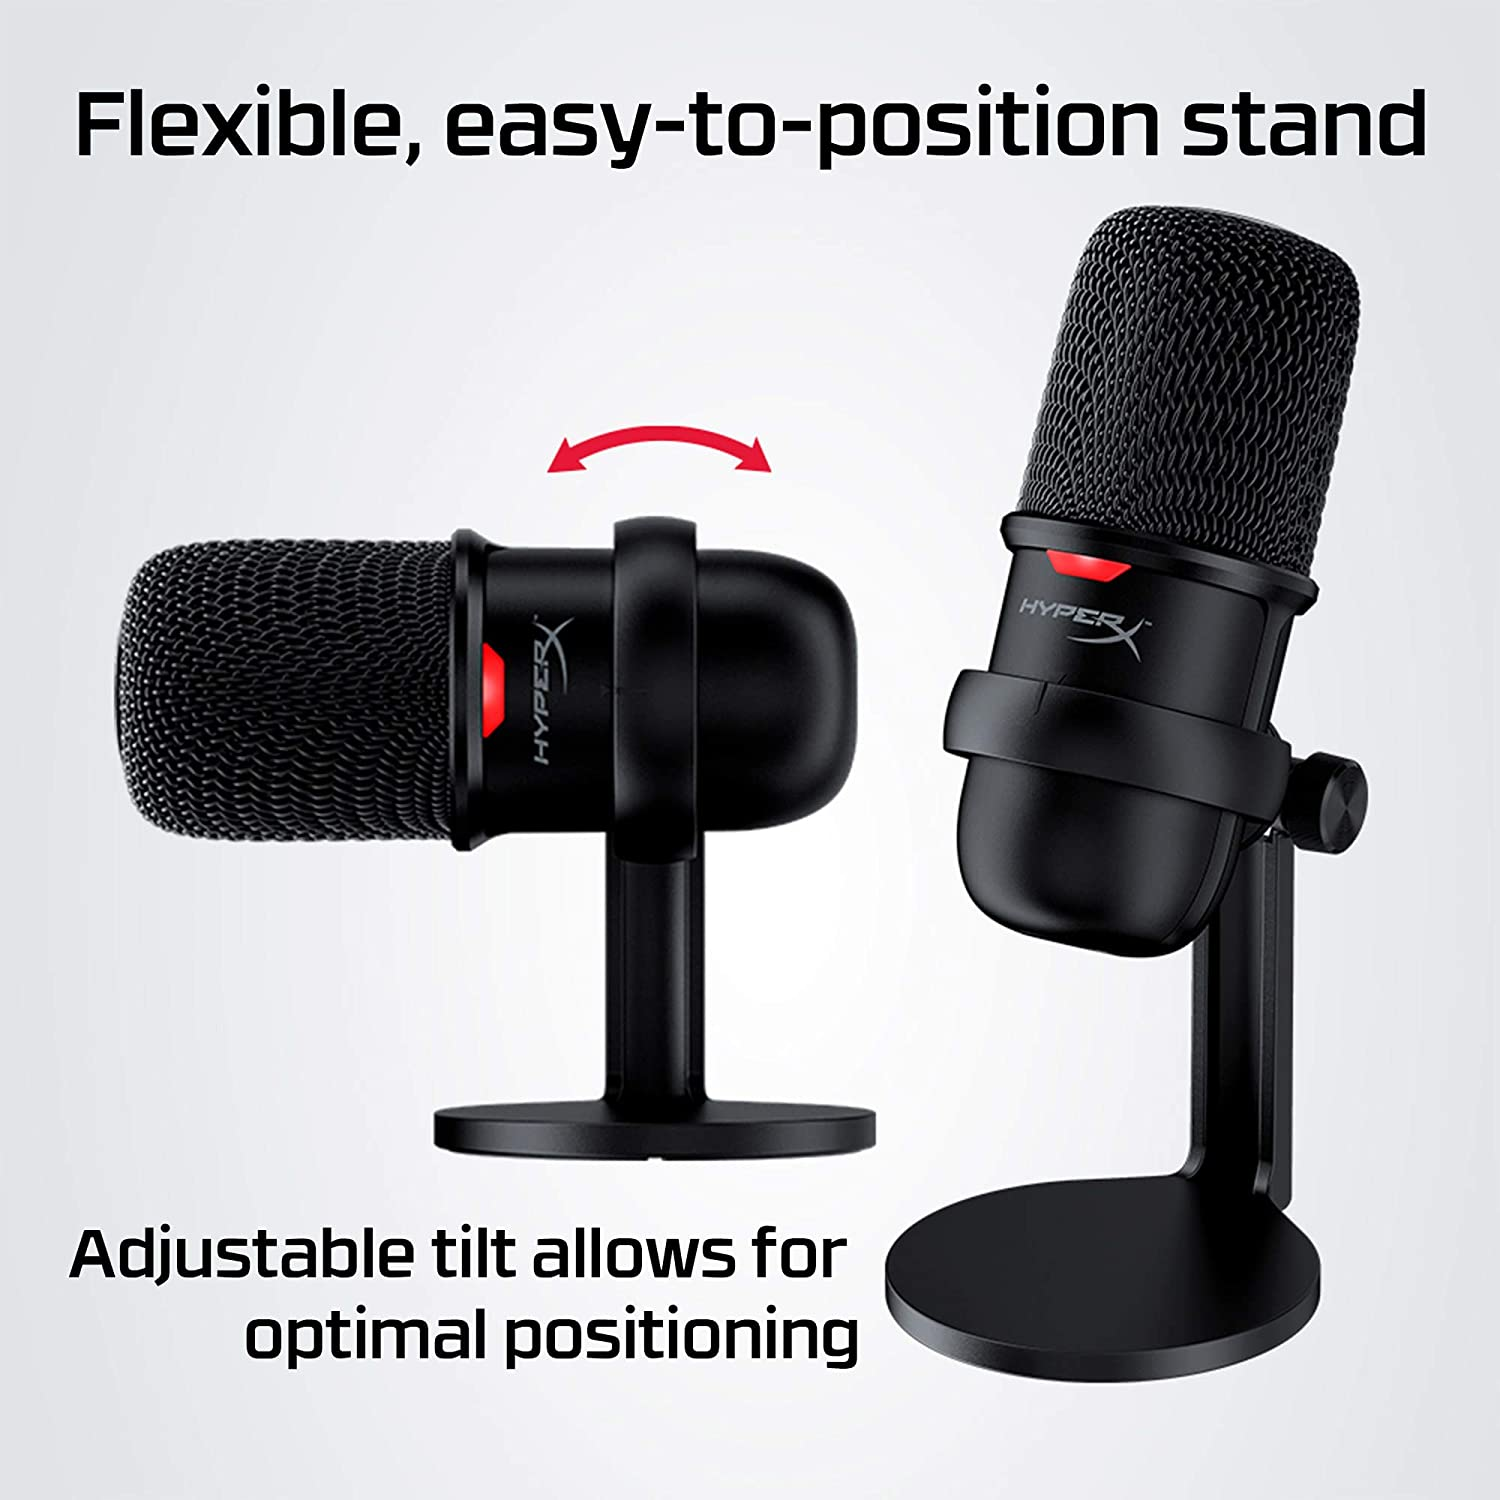 Twitch Podcasts Tap-to-Mute Sensor HyperX SoloCast and Mac Cardioid Polar Pattern YouTube Streaming PS4 for PC Discord USB Condenser Gaming Microphone Gaming